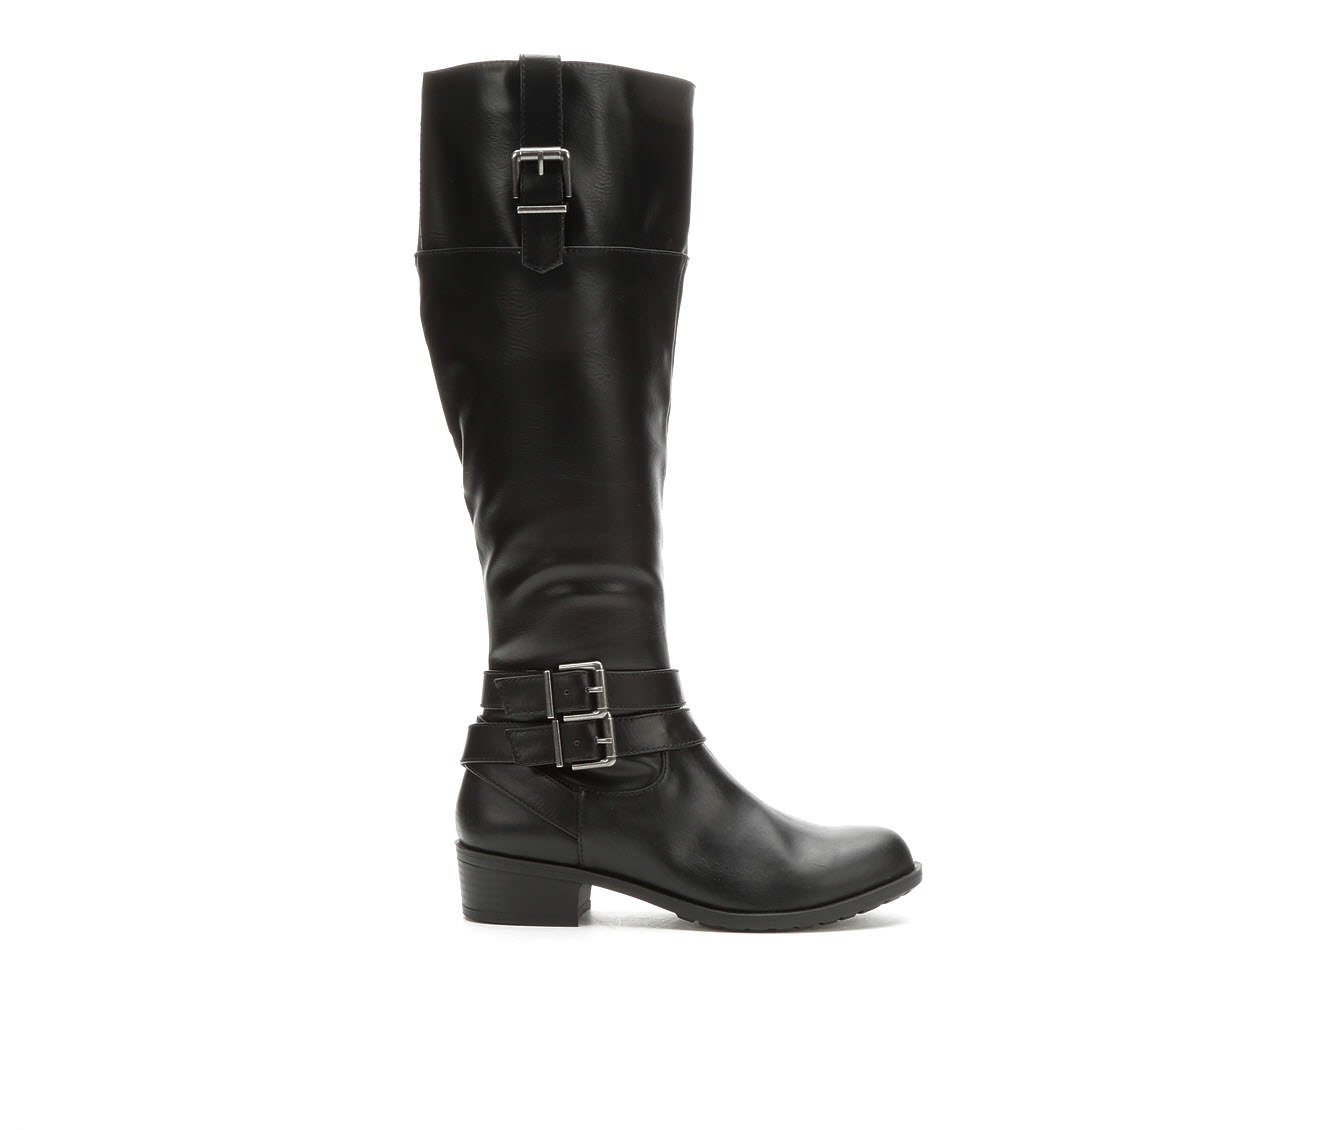 Solanz Grammercy Women's Boots (Black - Faux Leather)